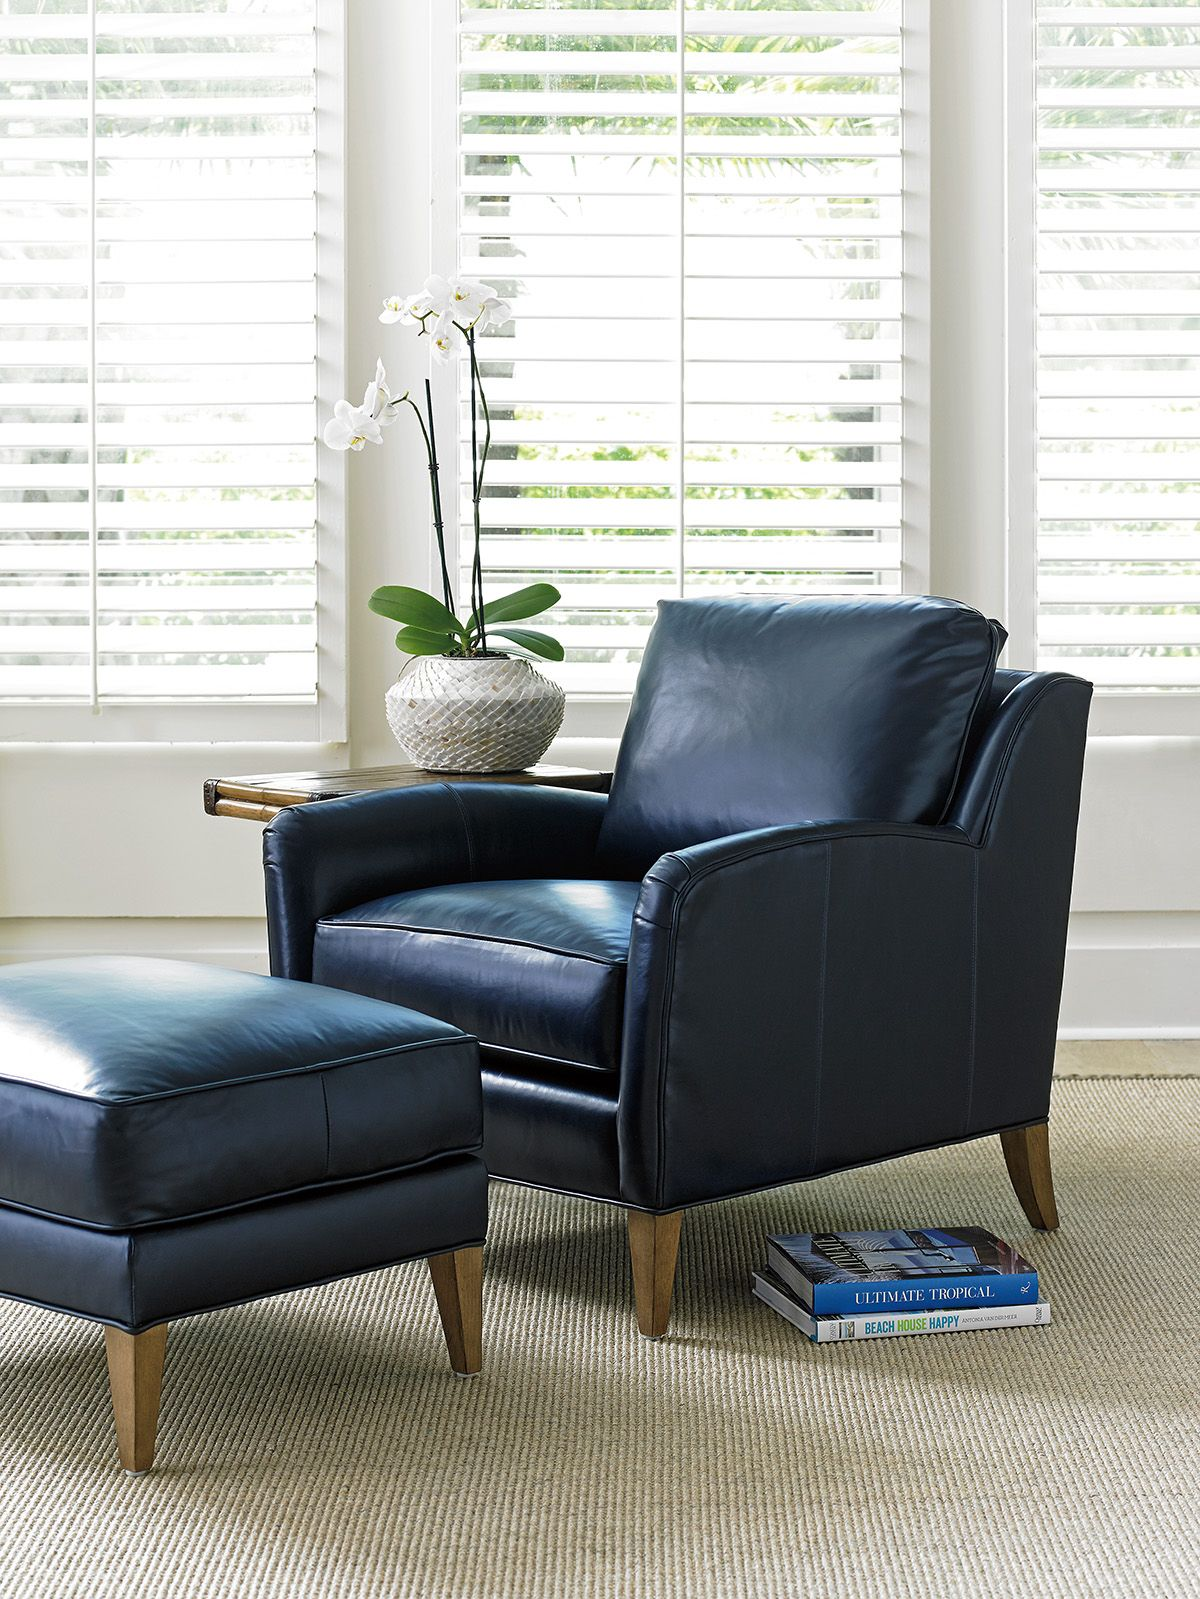 Twin Palms Coconut Grove Leather Chair Leather Chair Oversized